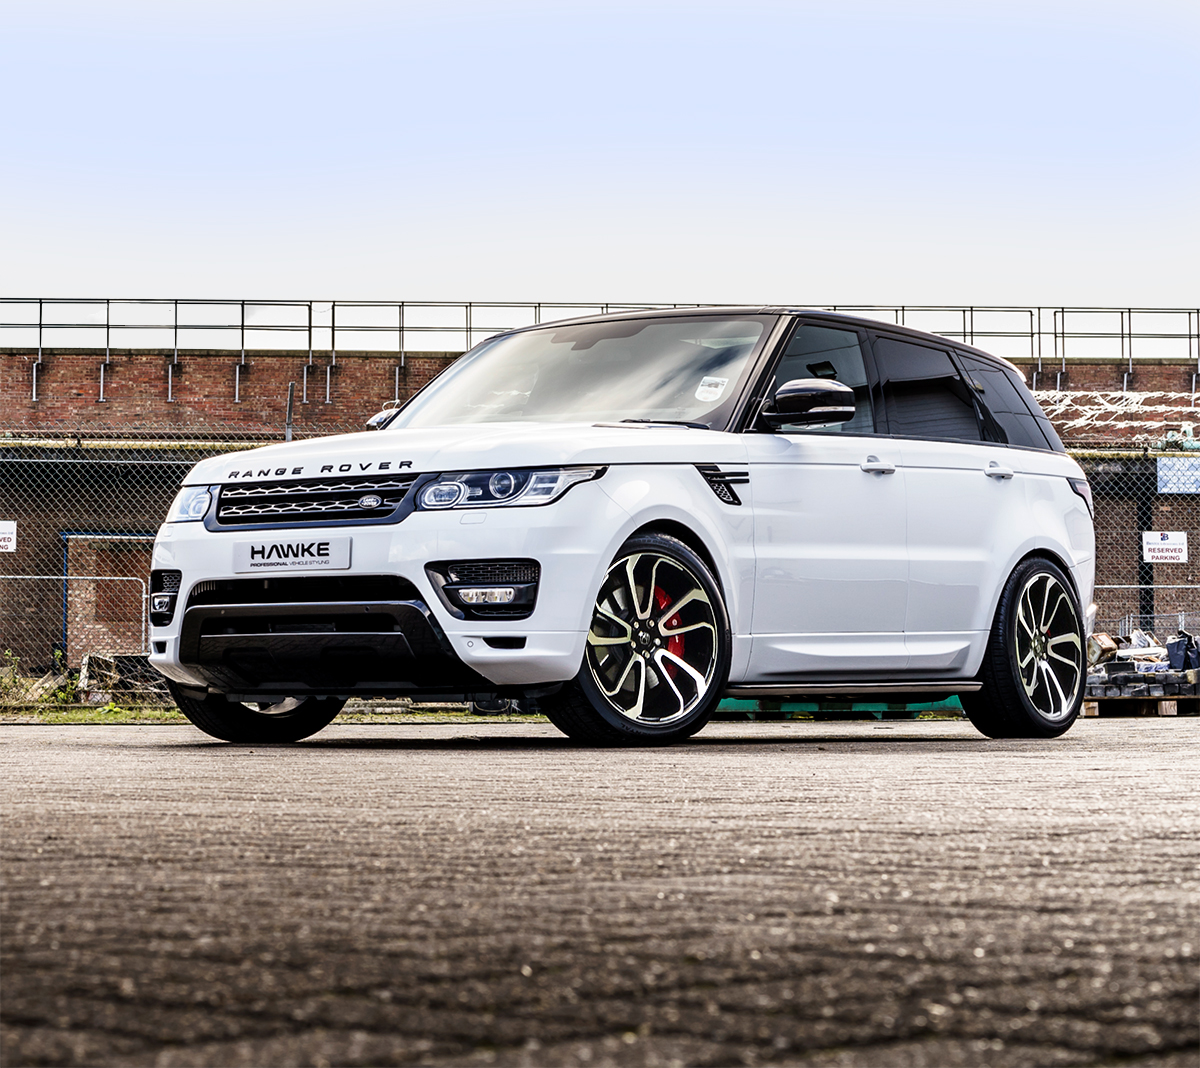 White Range Rover Sport on HAWKE Falkon wheels in Black Polished colour finish